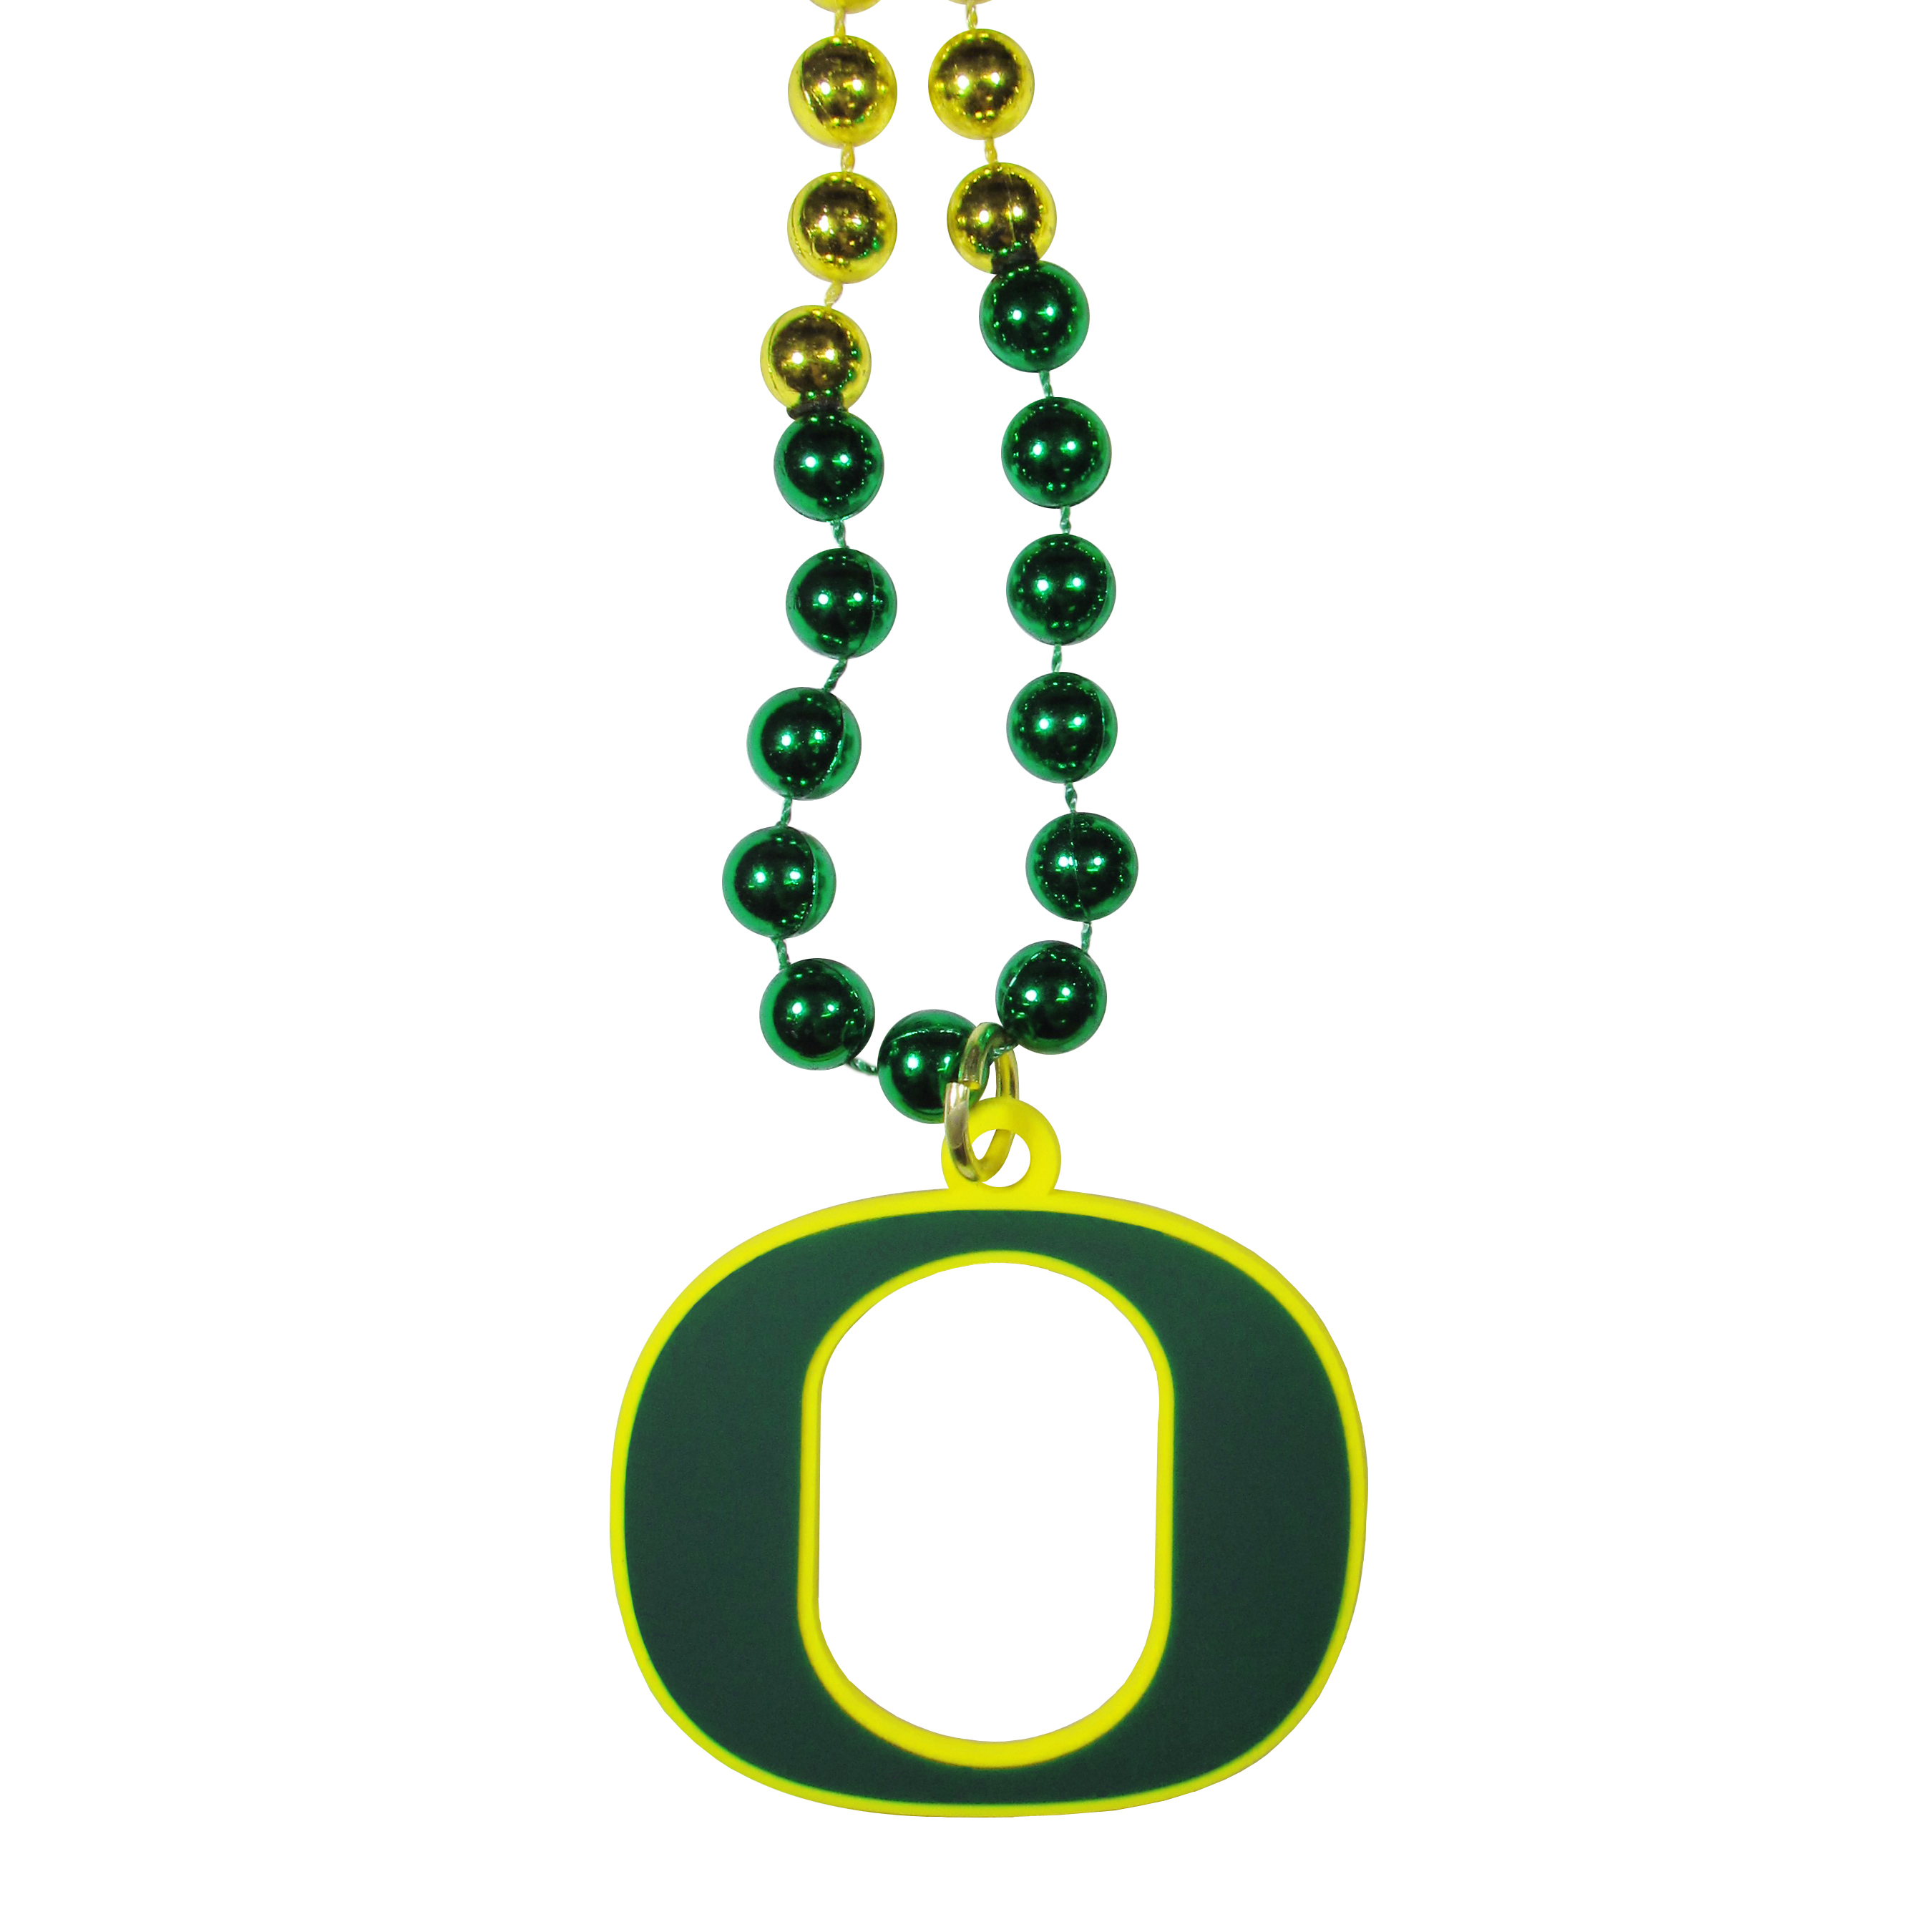 Oregon Ducks Mardi Gras Necklace - Get the party started with this Mardi Gras inspired bead necklace. The flashy beads have a shiny finish and come in bright team colors strung together on a 36 inch string so you can make a big statement on game day! The beads come with an extra large flexible team logo that is a full 3 inches at its widest point. This trendy and bold necklace screams out your Oregon Ducks pride and is a must have at game time!